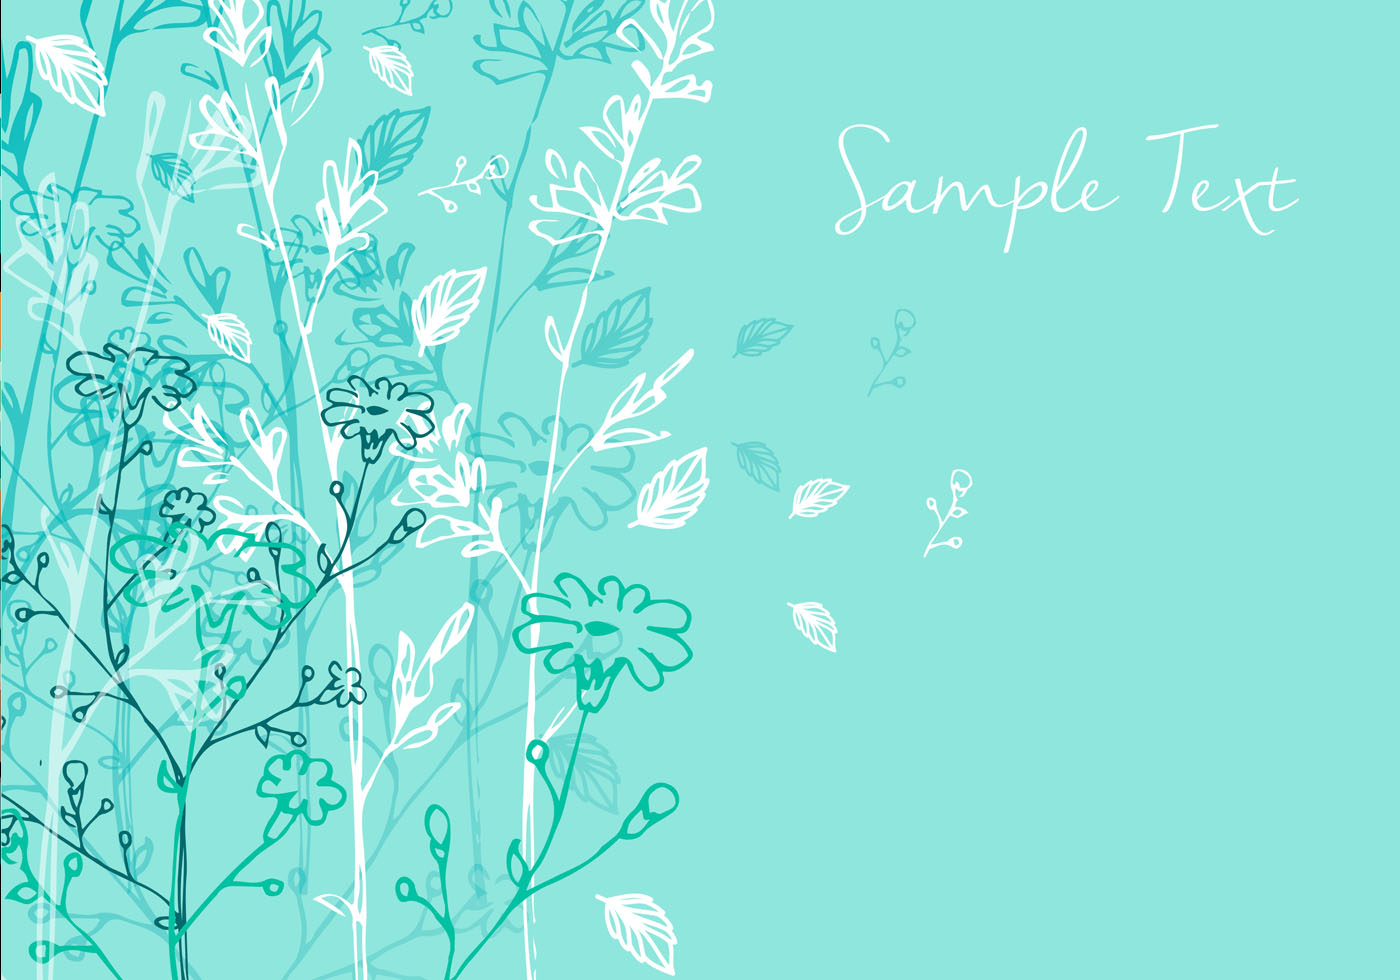 Floral Background Designs Free Vector Art - (31413 Free Downloads)